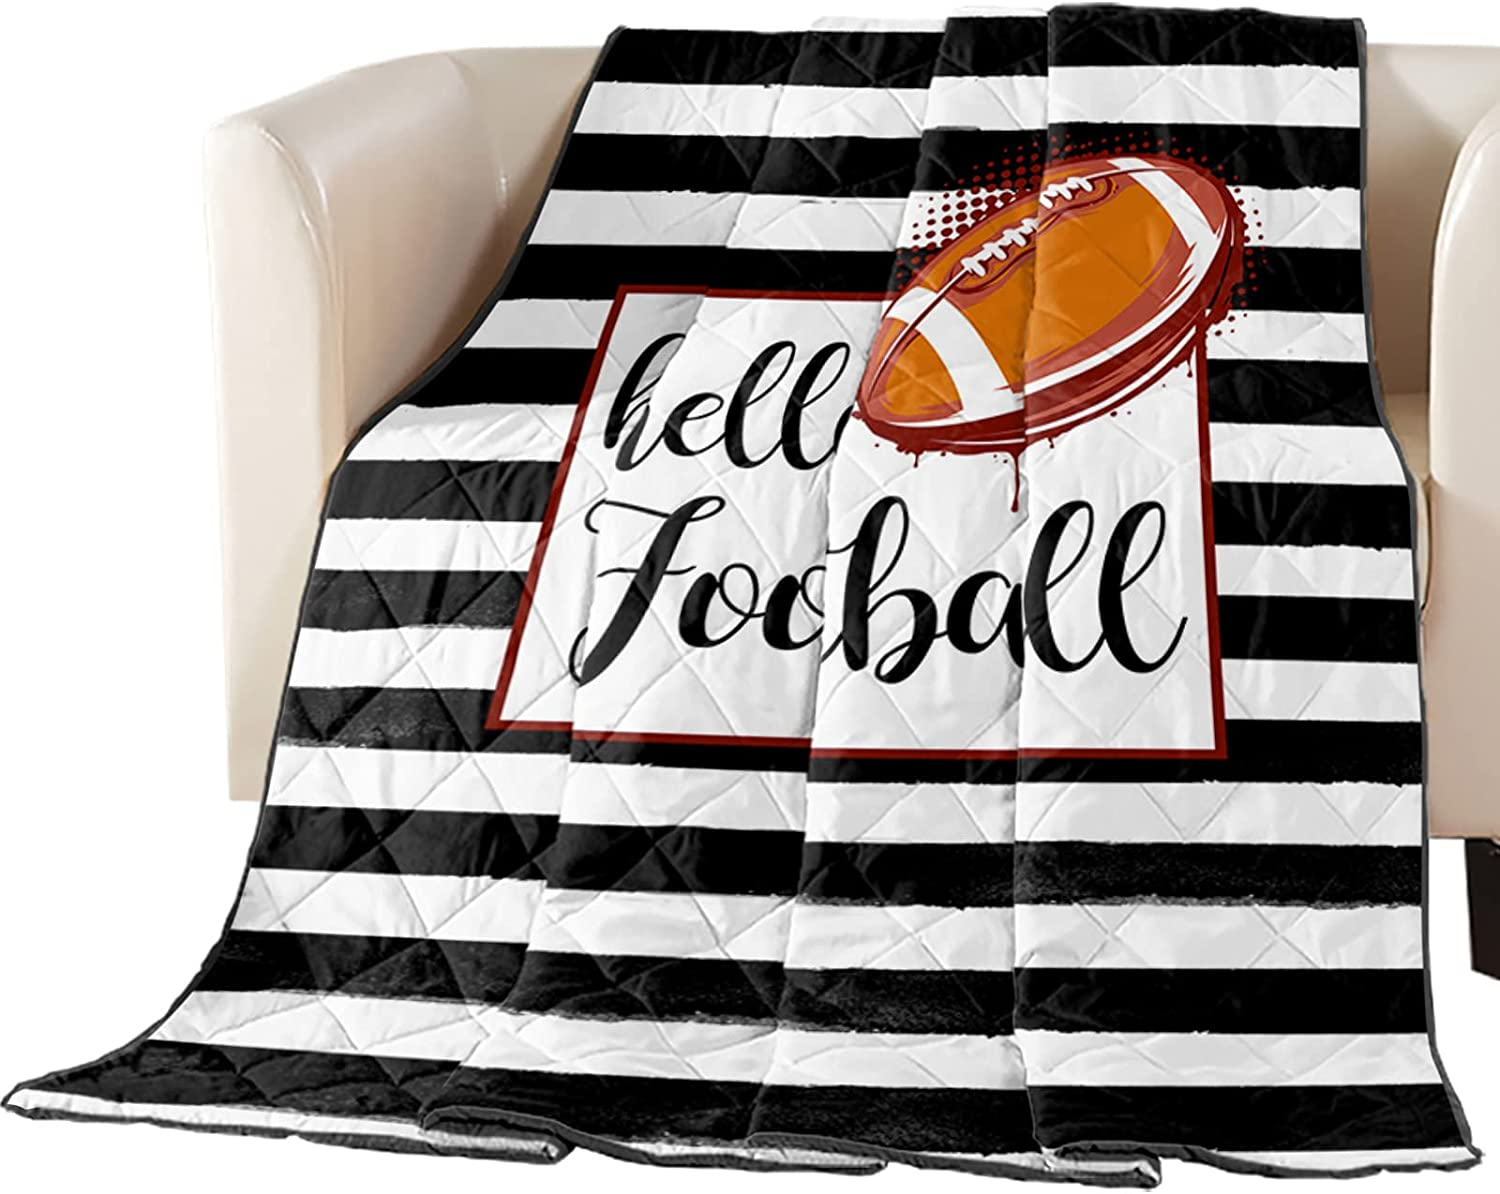 Arts Language Max 55% OFF Bedspread Quilt Twin and Size Large discharge sale Hello Football Black